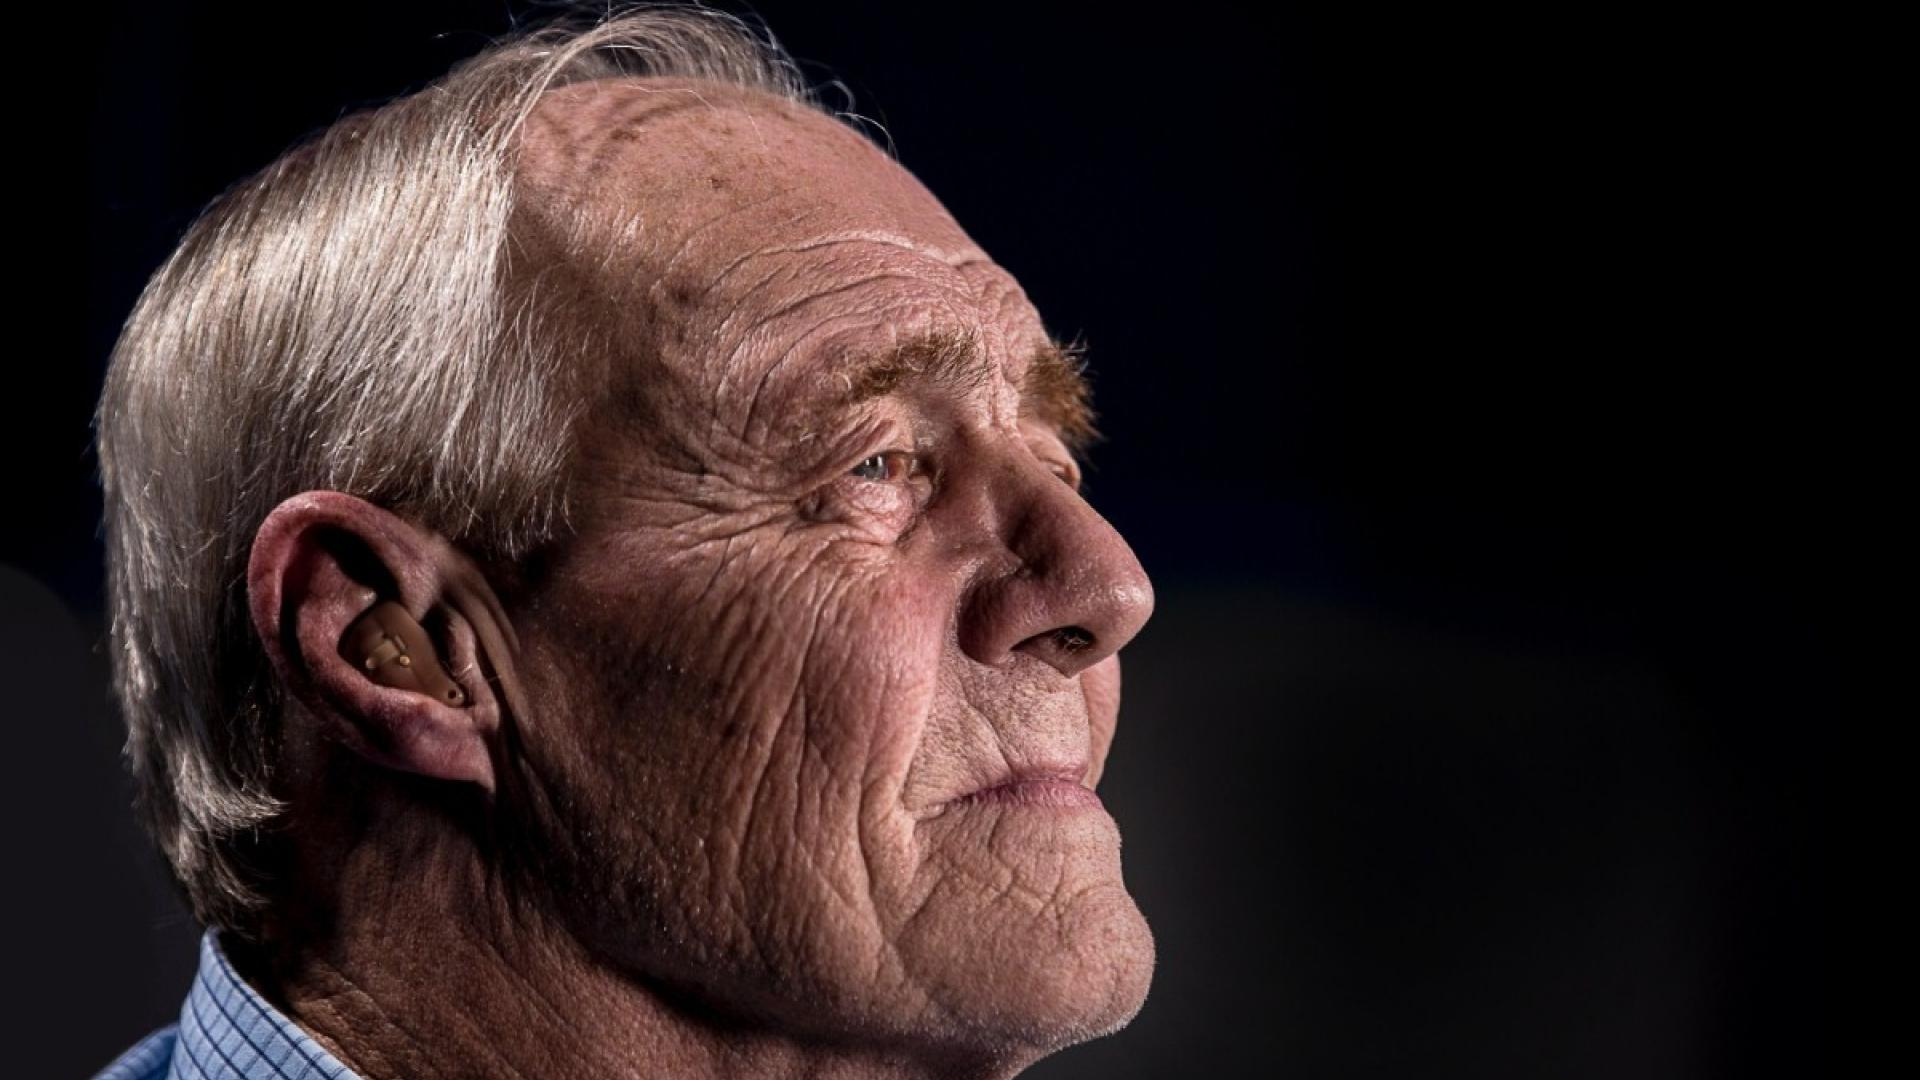 Stimulating the vagus nerve 'could prevent age-related health conditions'